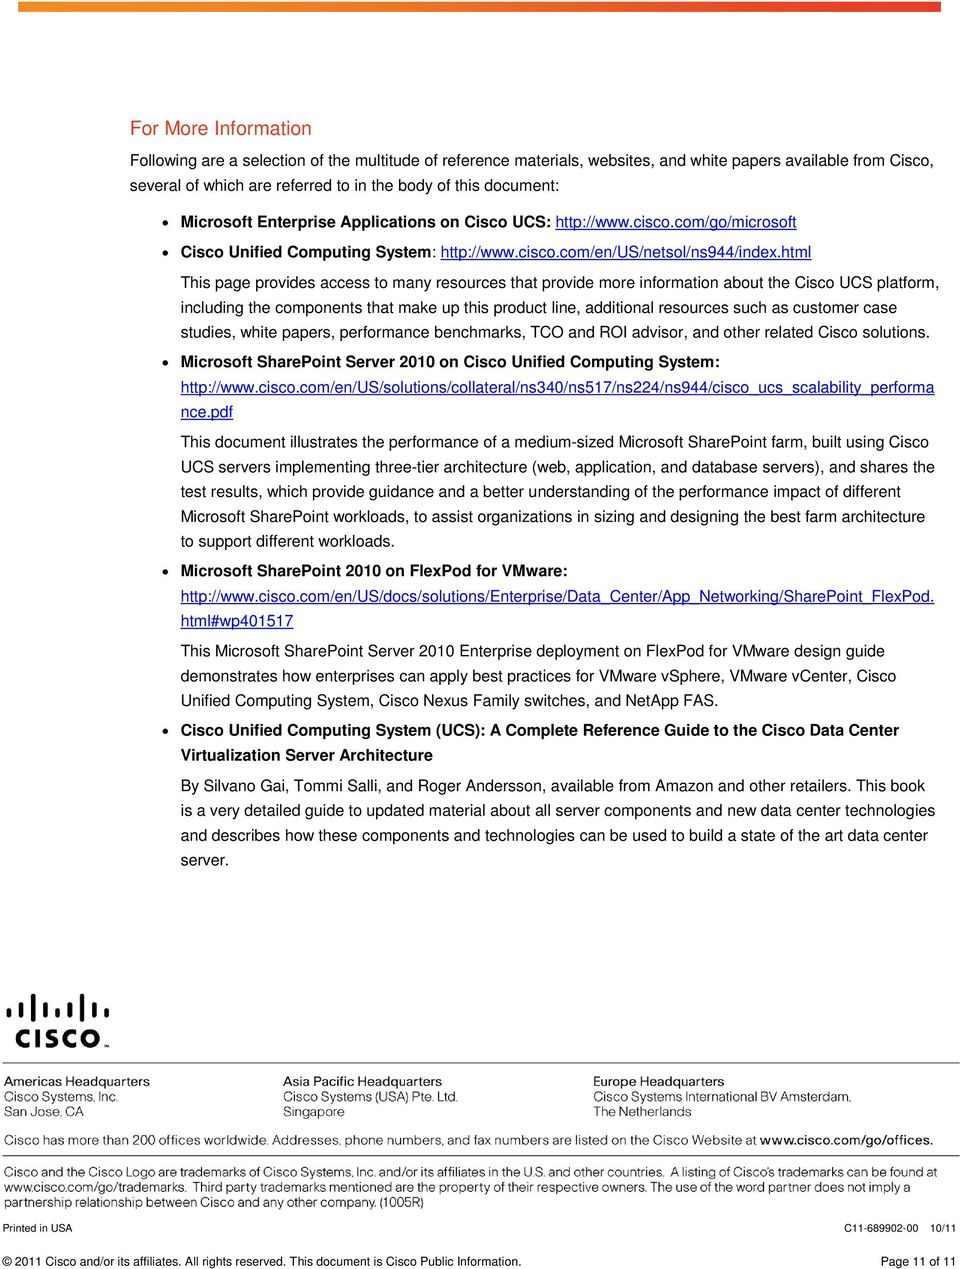 html This page provides access to many resources that provide more information about the Cisco UCS platform, including the components that make up this product line, additional resources such as